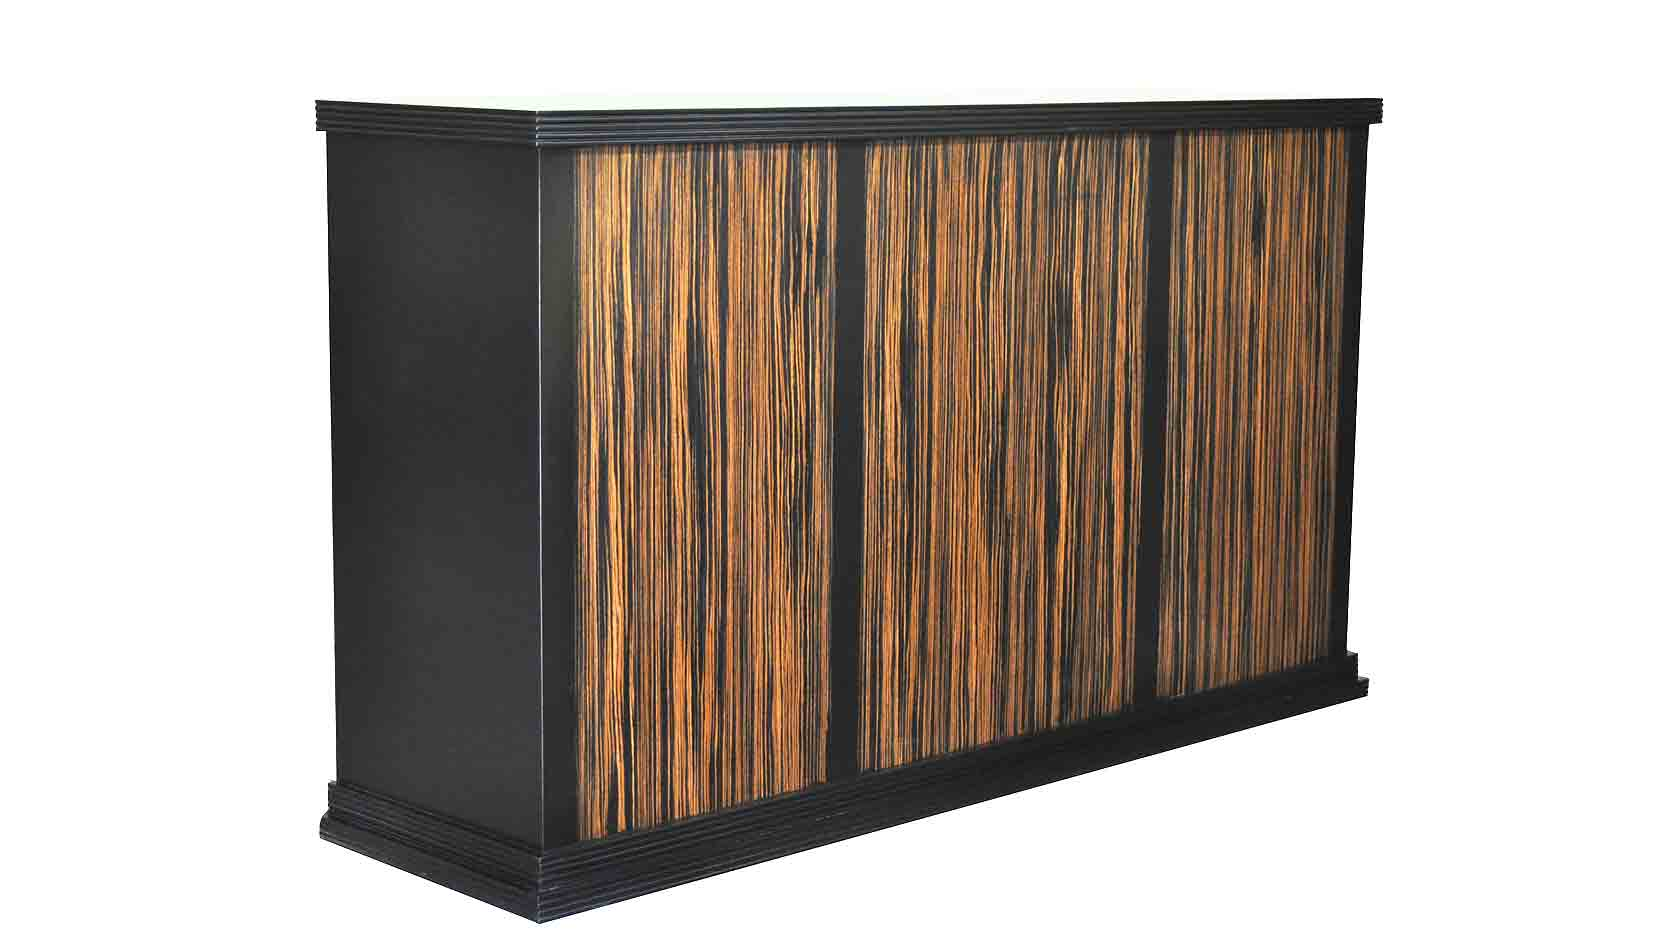 modena pop up flatscreen cabinet